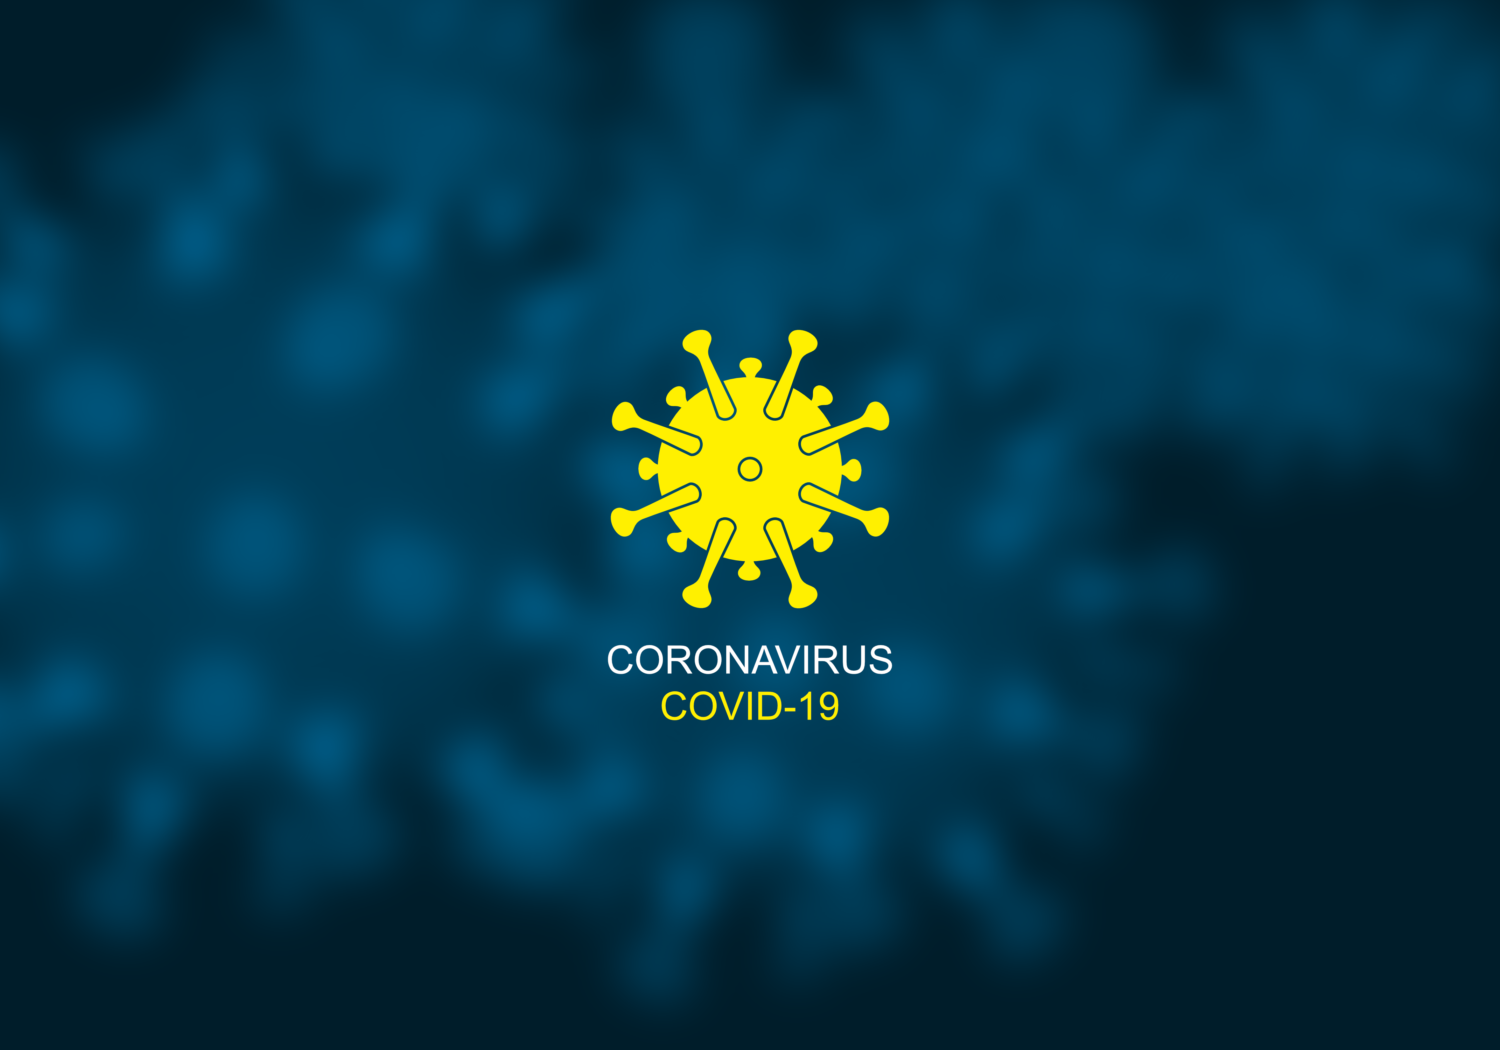 Free image download: Coronavirus, yellow, blue, labeled, covid-19, #000051